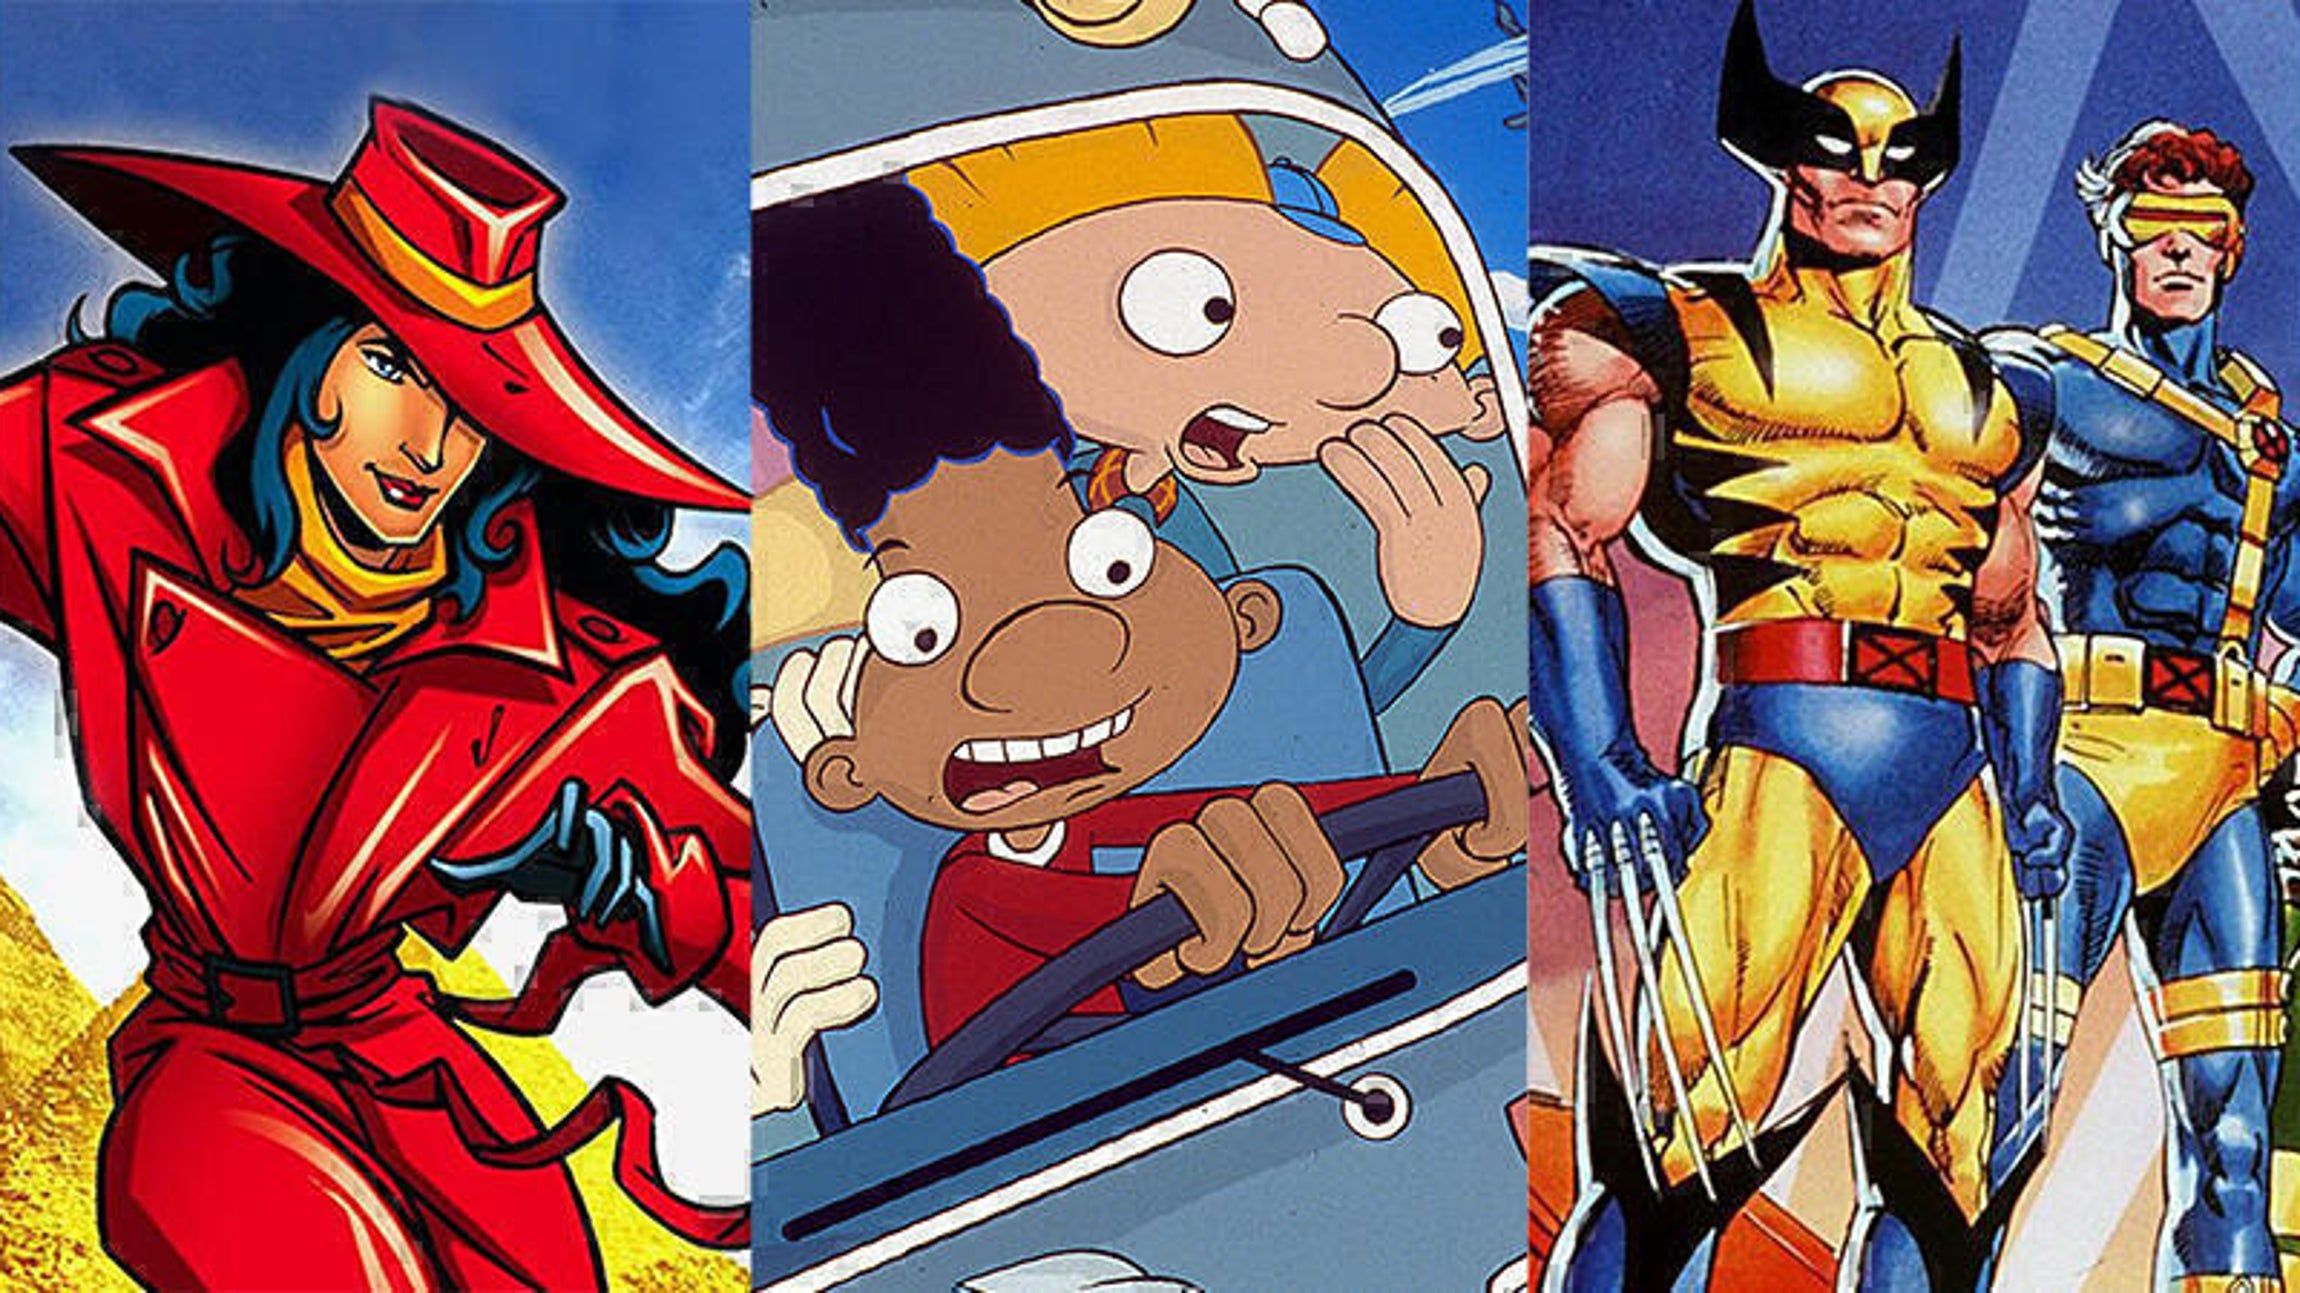 Where on Earth Is Carmen Sandiego?, Hey Arnold!, X-Men: The Animated Series